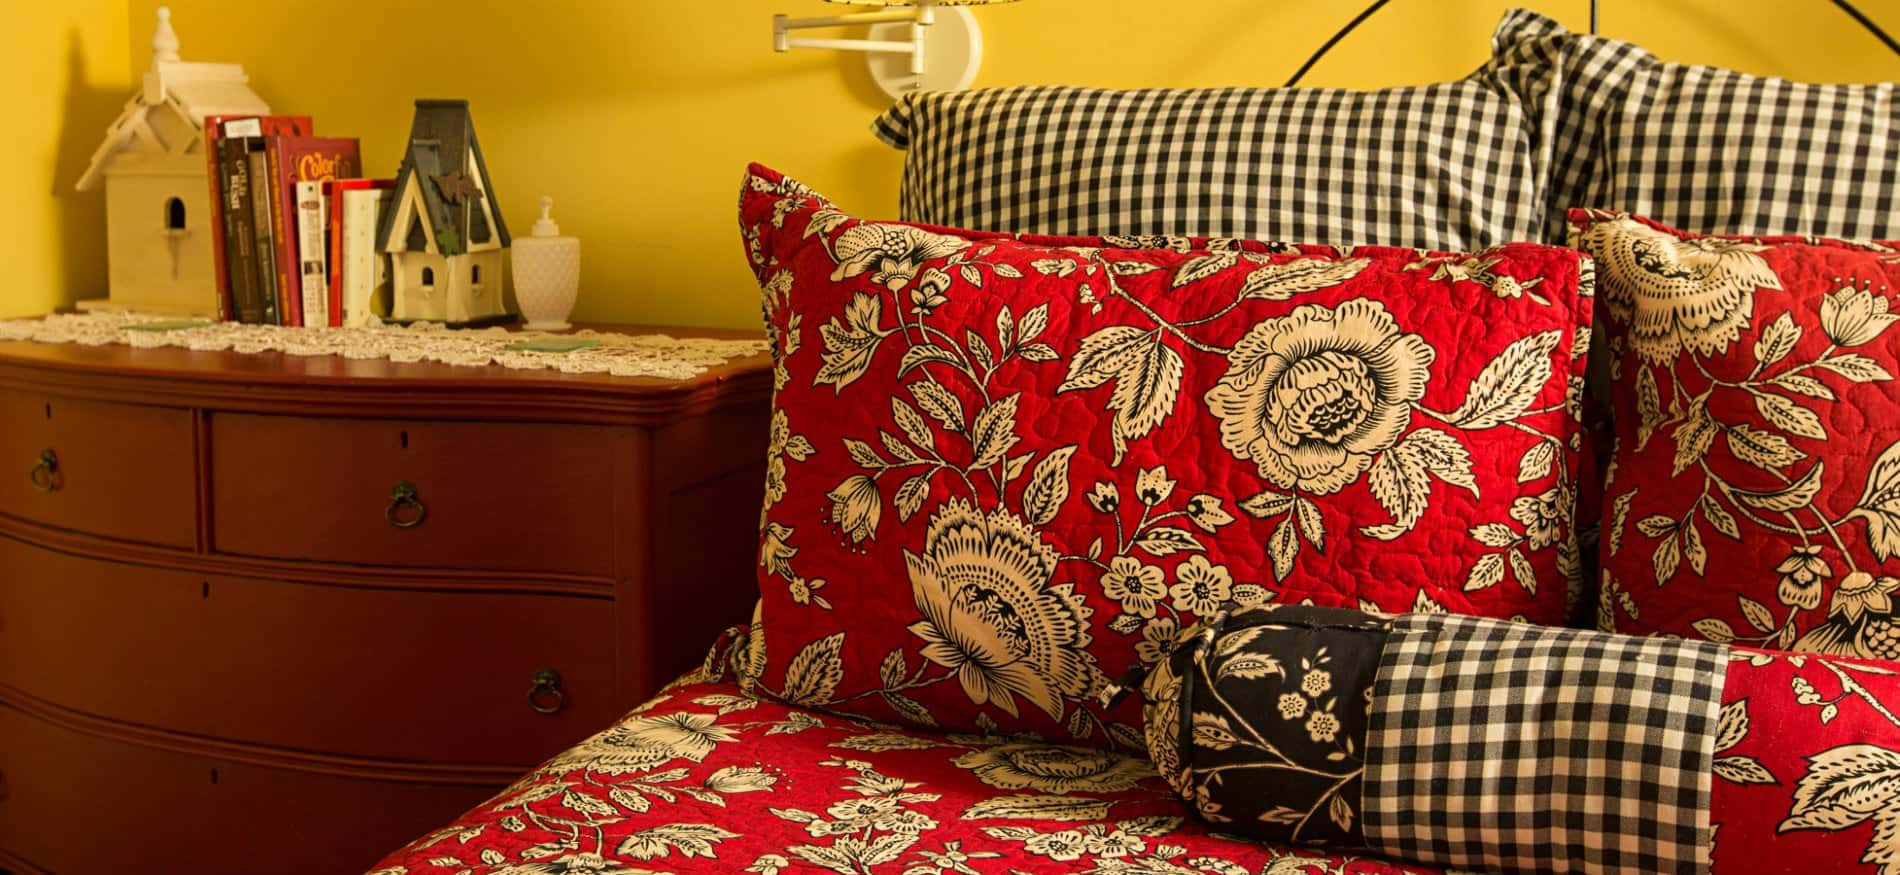 Close-up view of bed with red, black and white bedding and a nightstand chest topped with books and birdhouses